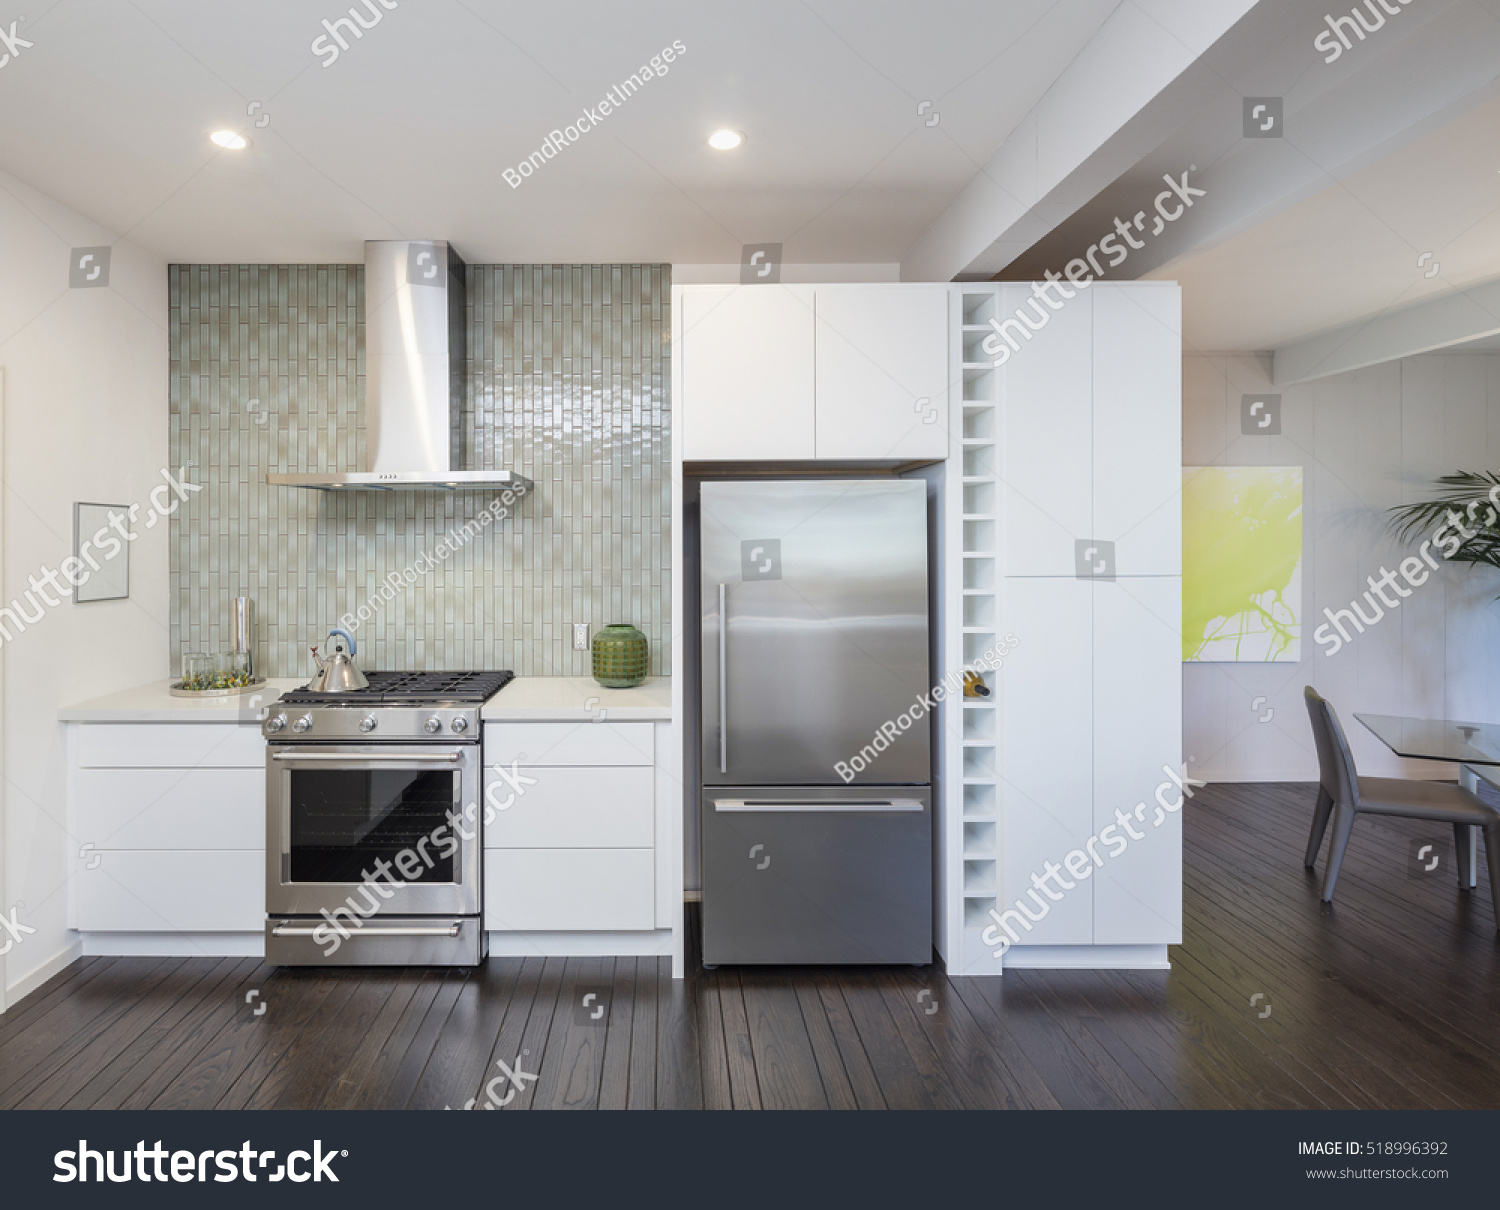 modern kitchen interior design concept new stock photo 518996392 shutterstock. Black Bedroom Furniture Sets. Home Design Ideas